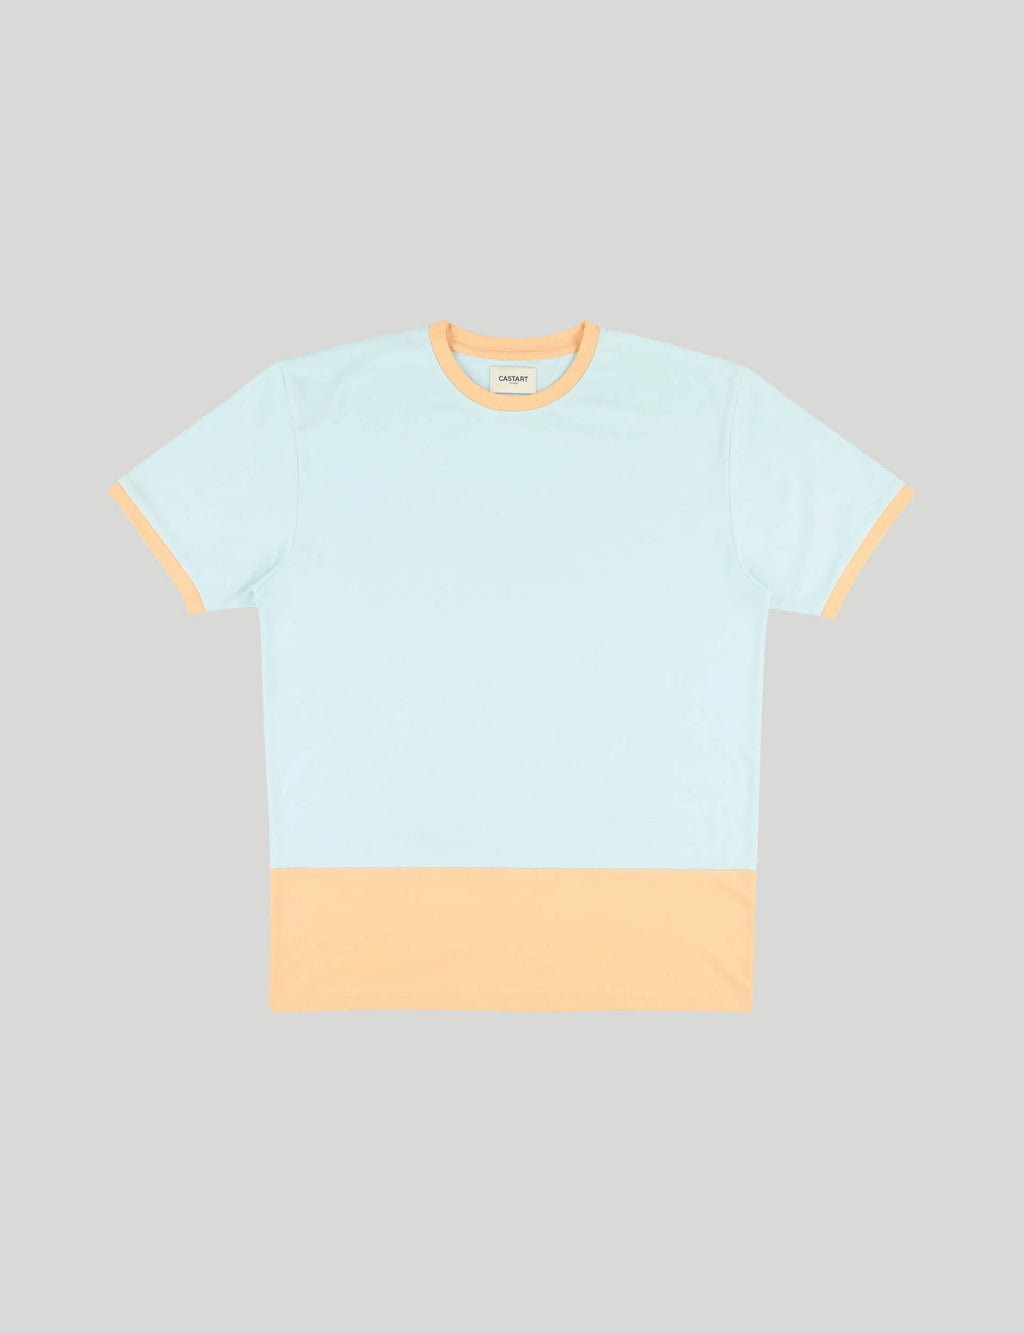 Castart bunny's ear t-shirt light blue